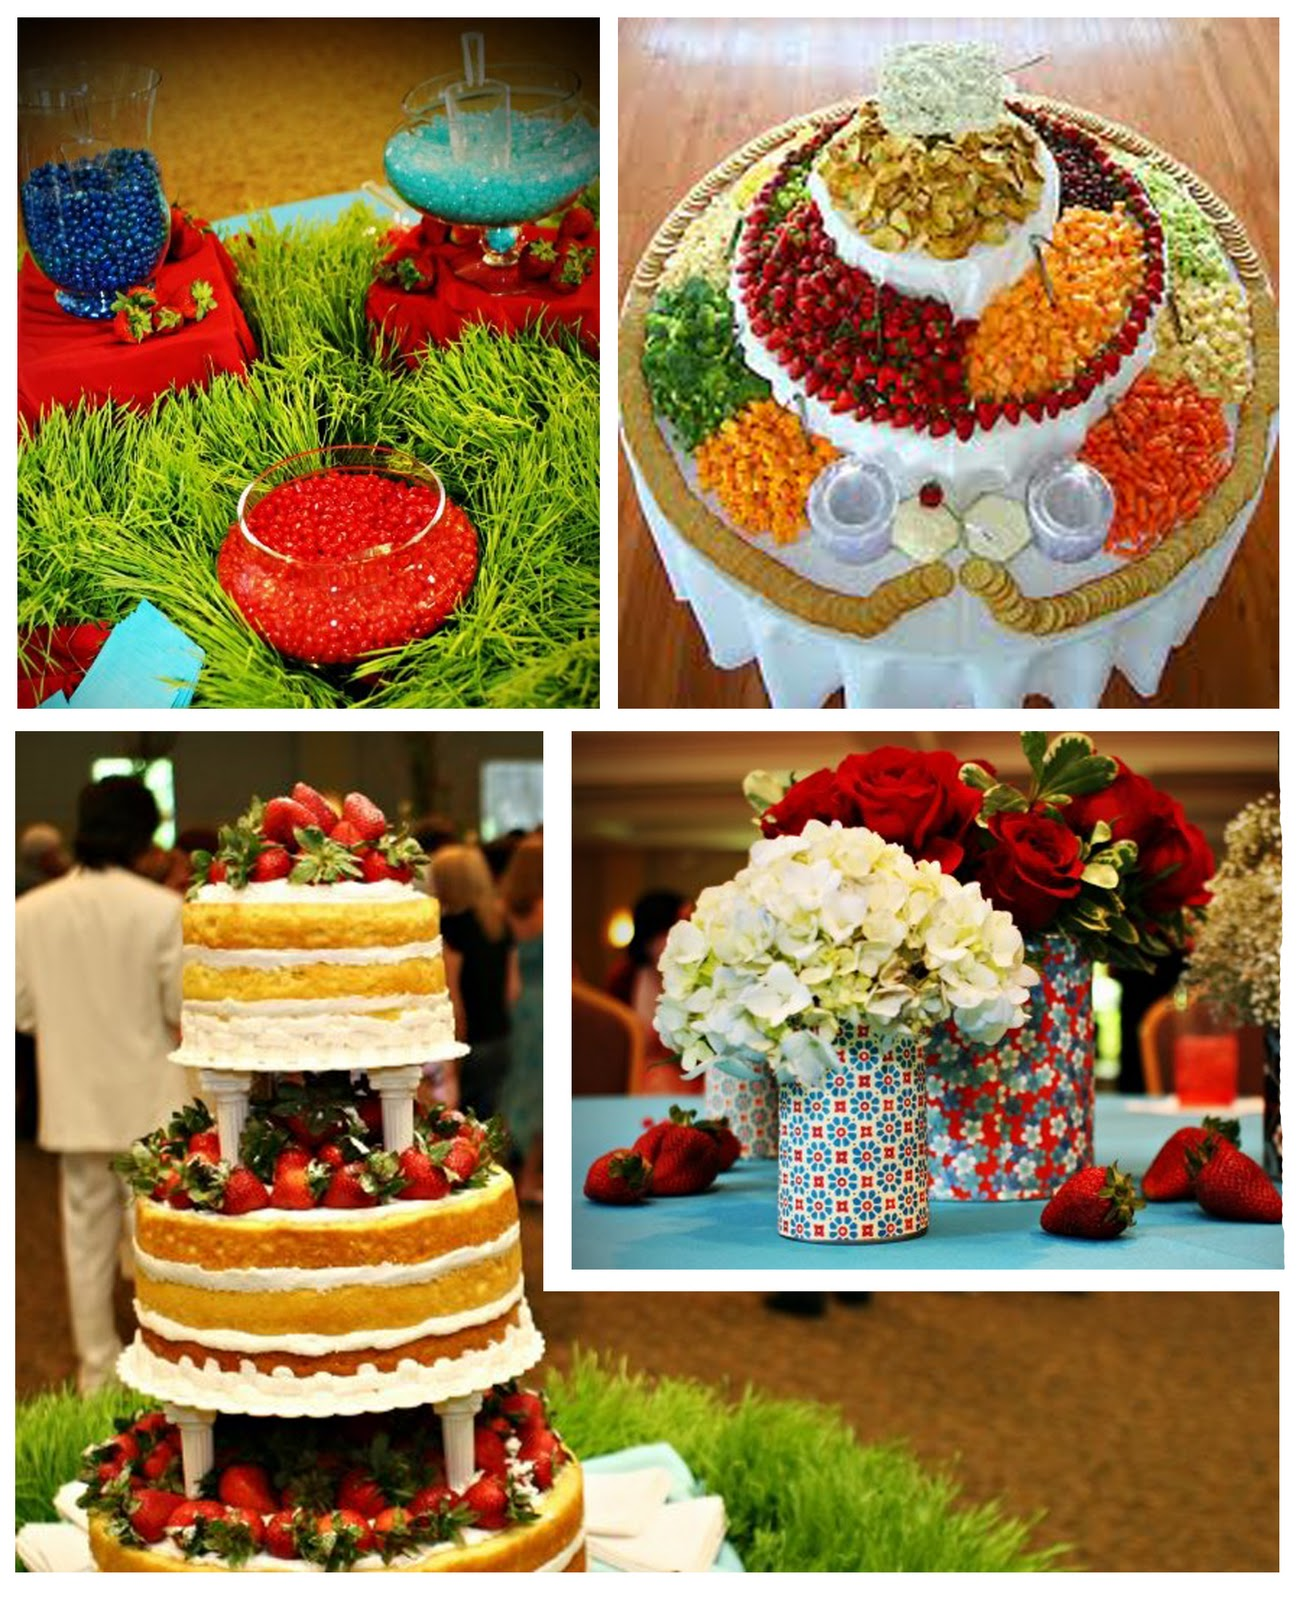 Food Buffet Displays http://intricutz.blogspot.com/2010/10/food-buffet-chance-to-display.html